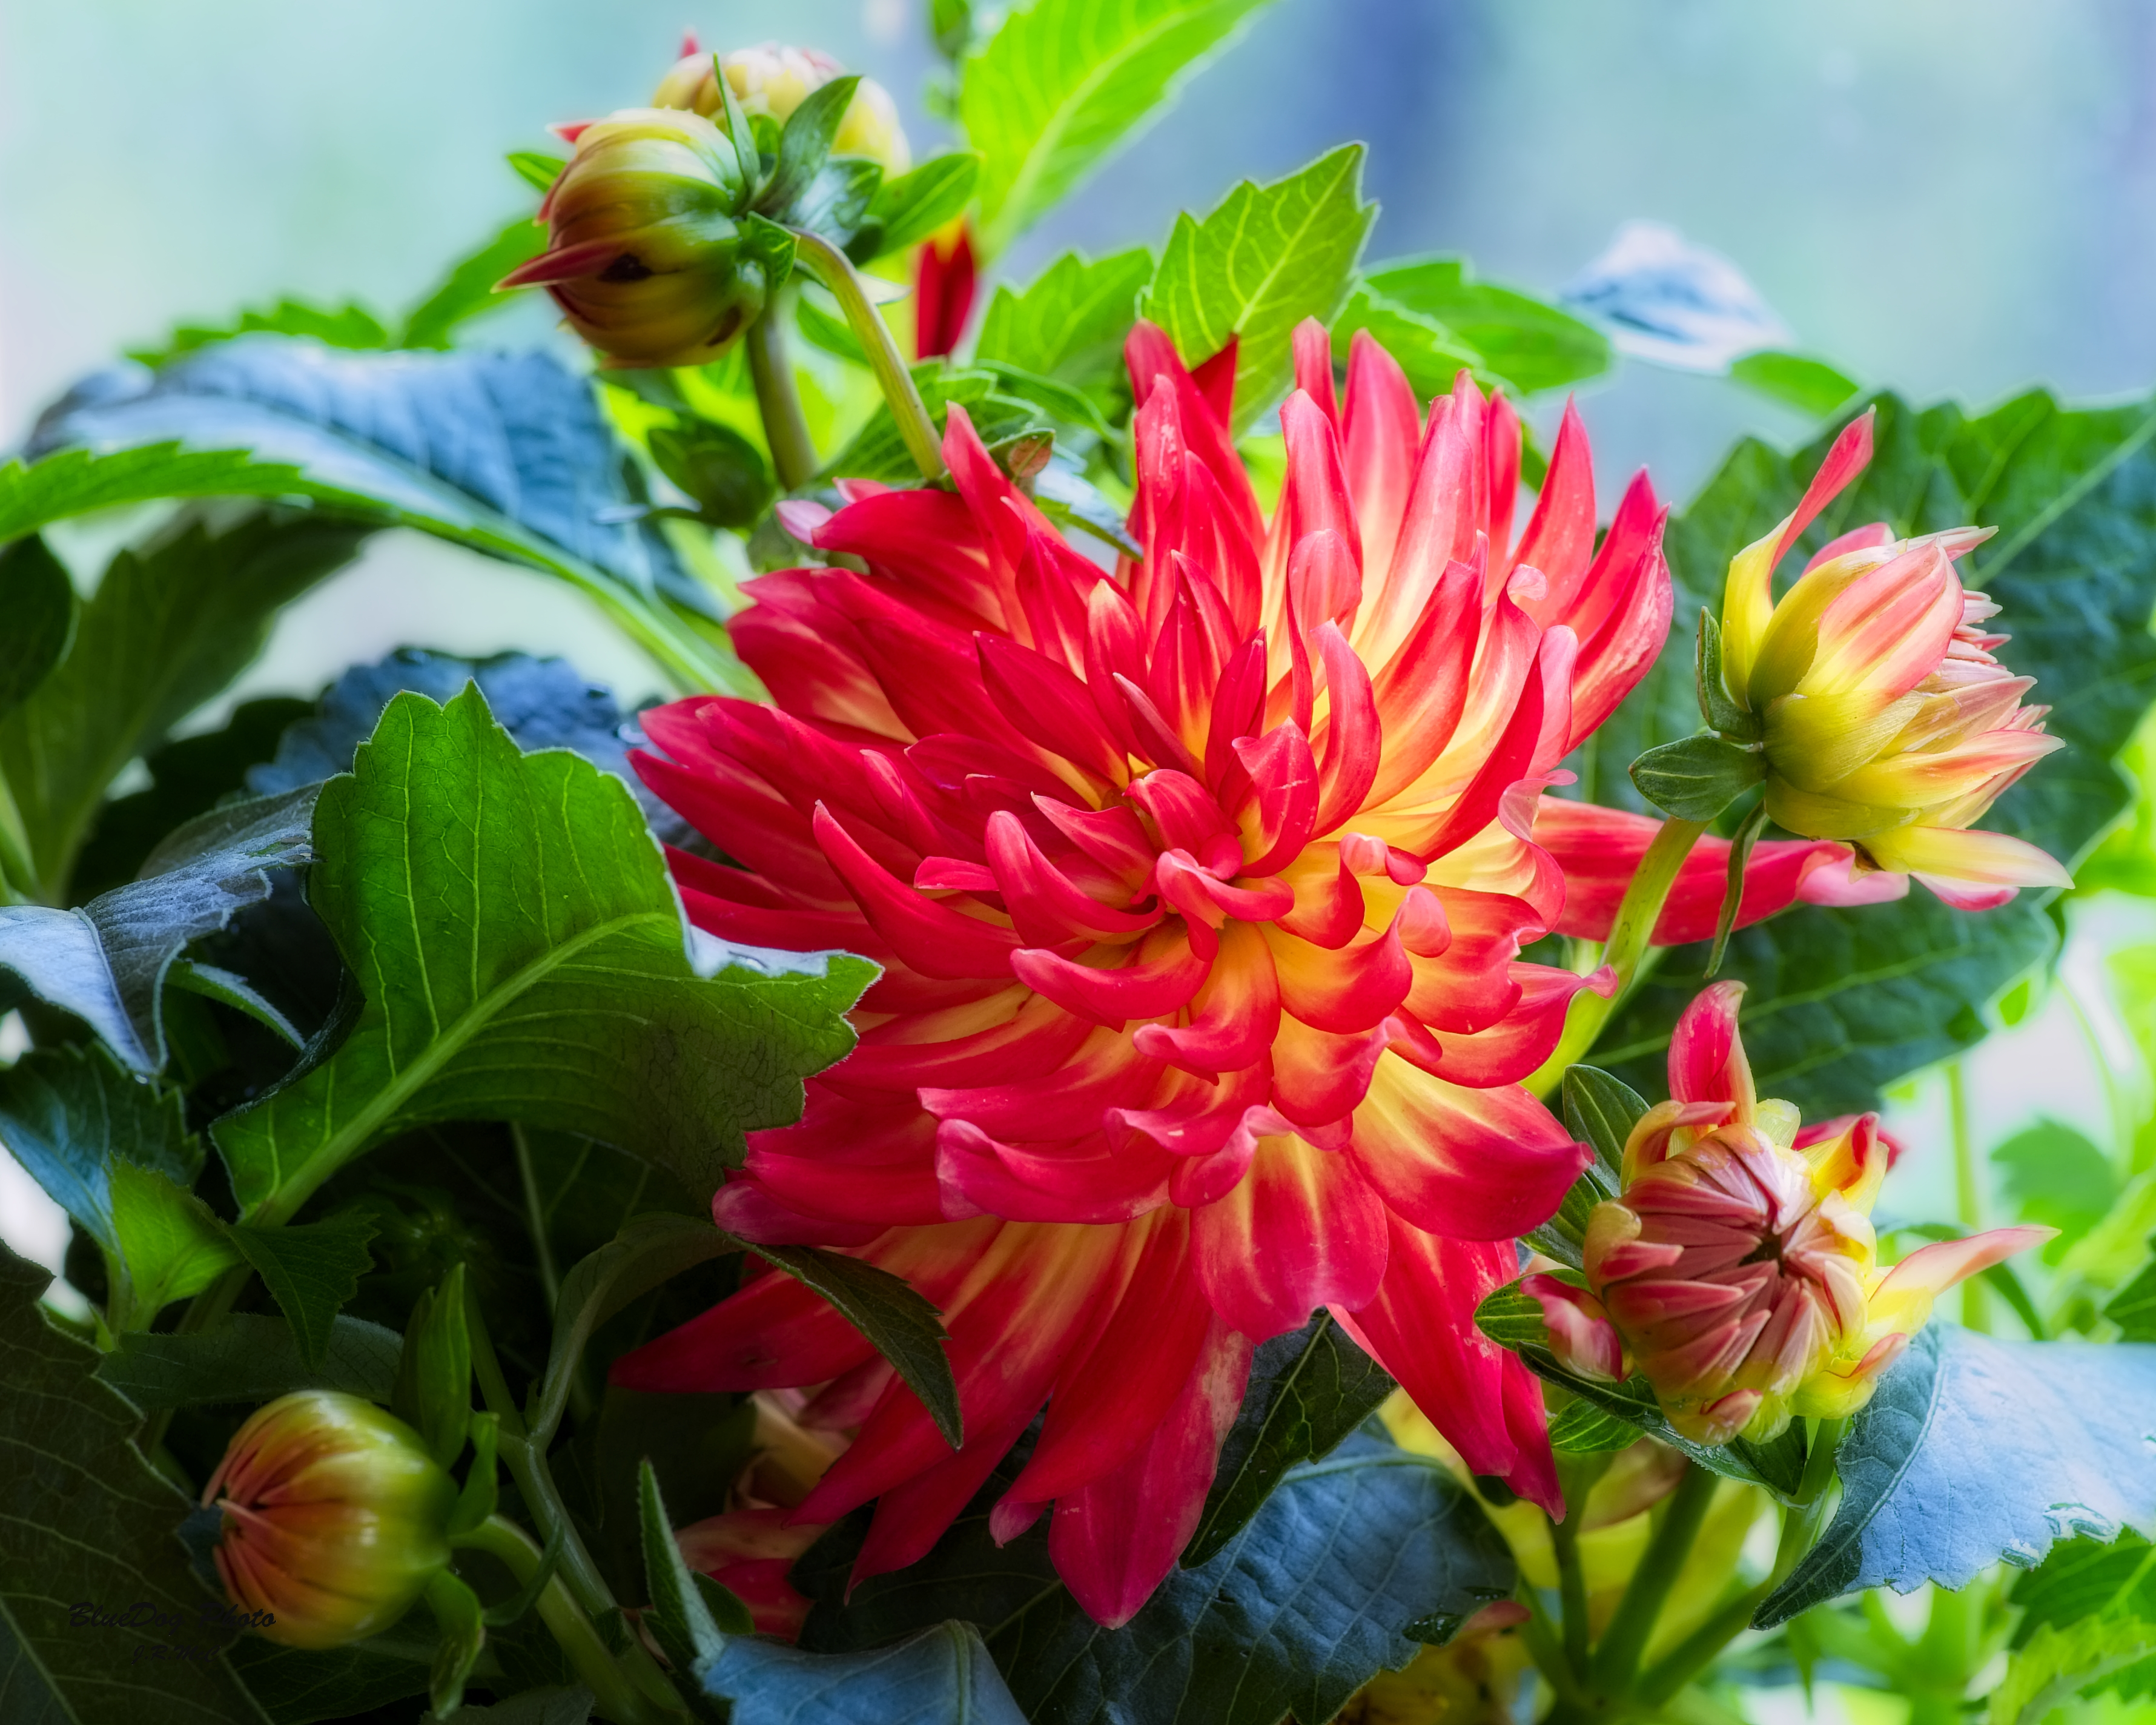 dahlia-orange bicolor 03-03 2019.jpg